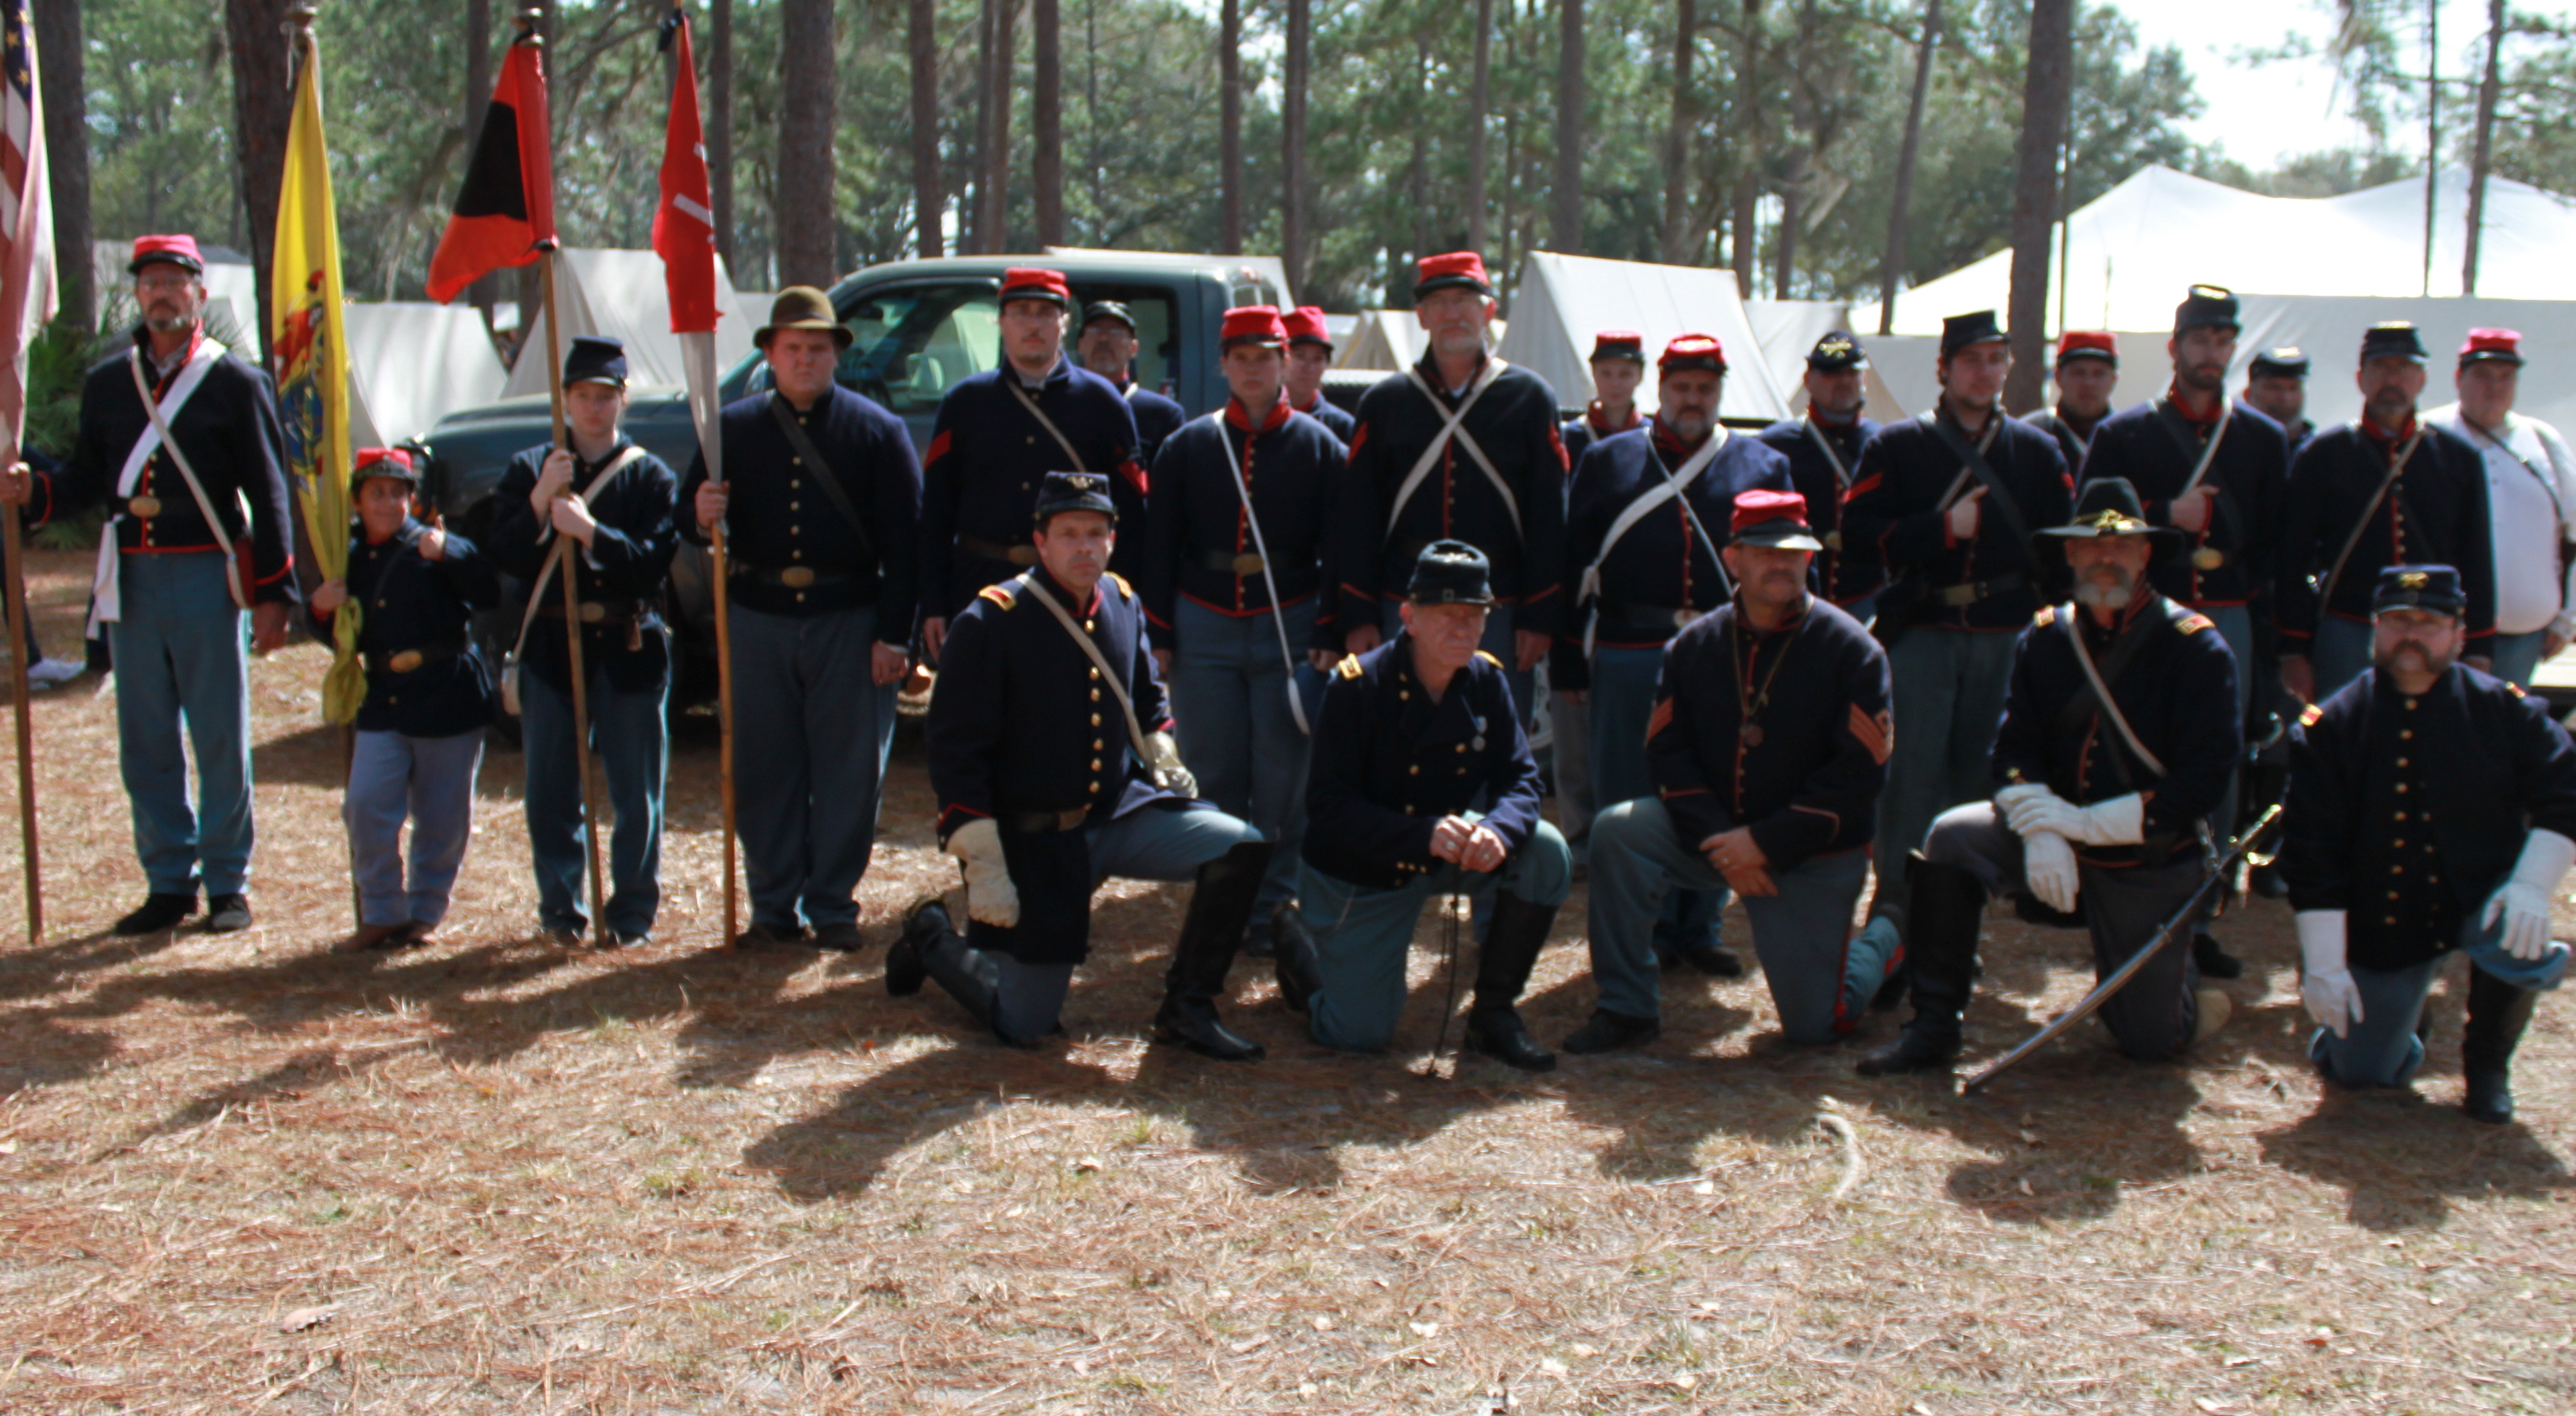 North Florida Artillery Historical Foundation, Incorporated